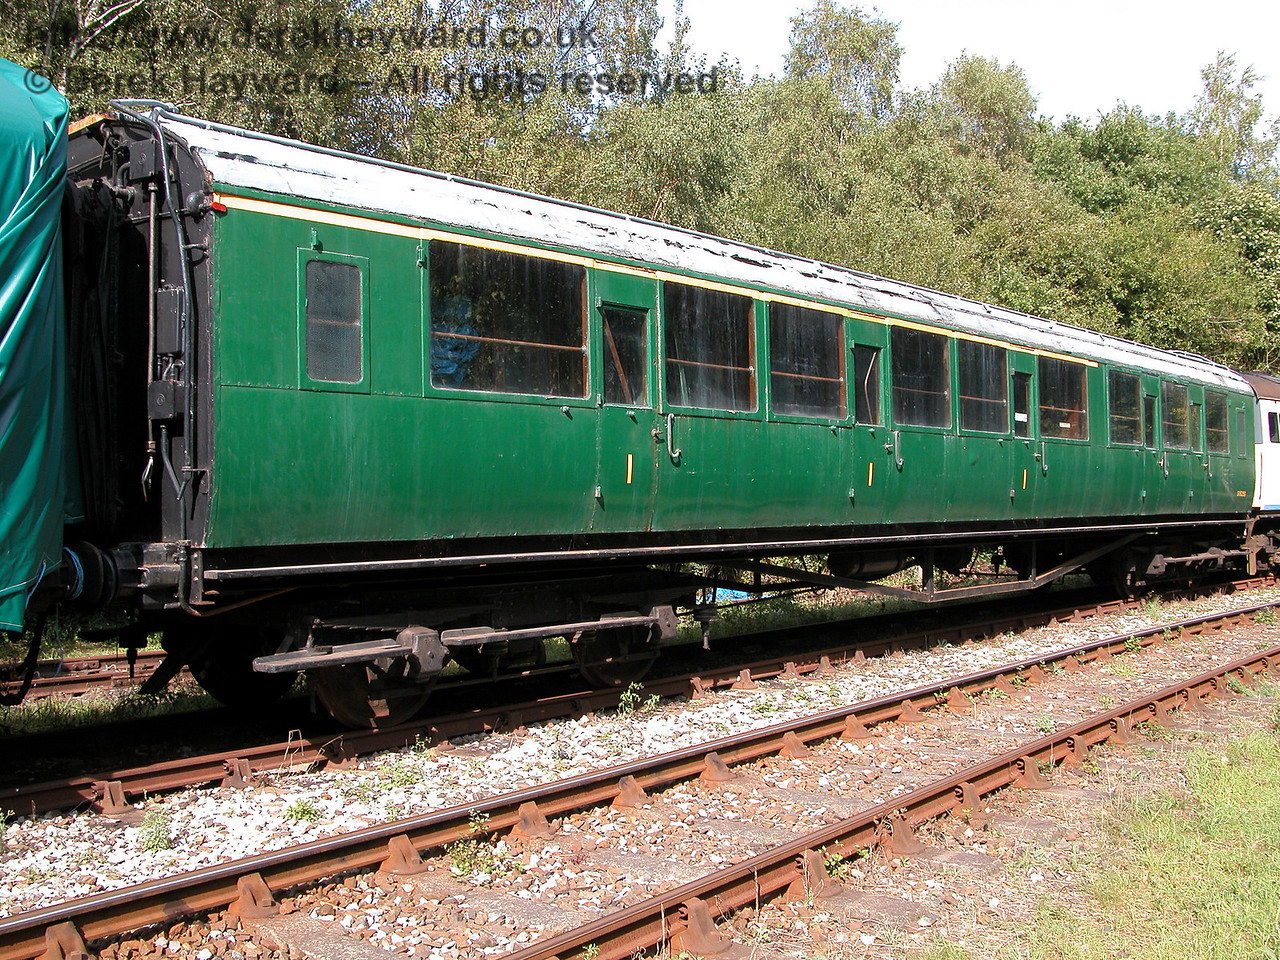 This is Trailer Composite 11825 from 3142, stored on the East Kent Railway, pictured on 19.09.2006